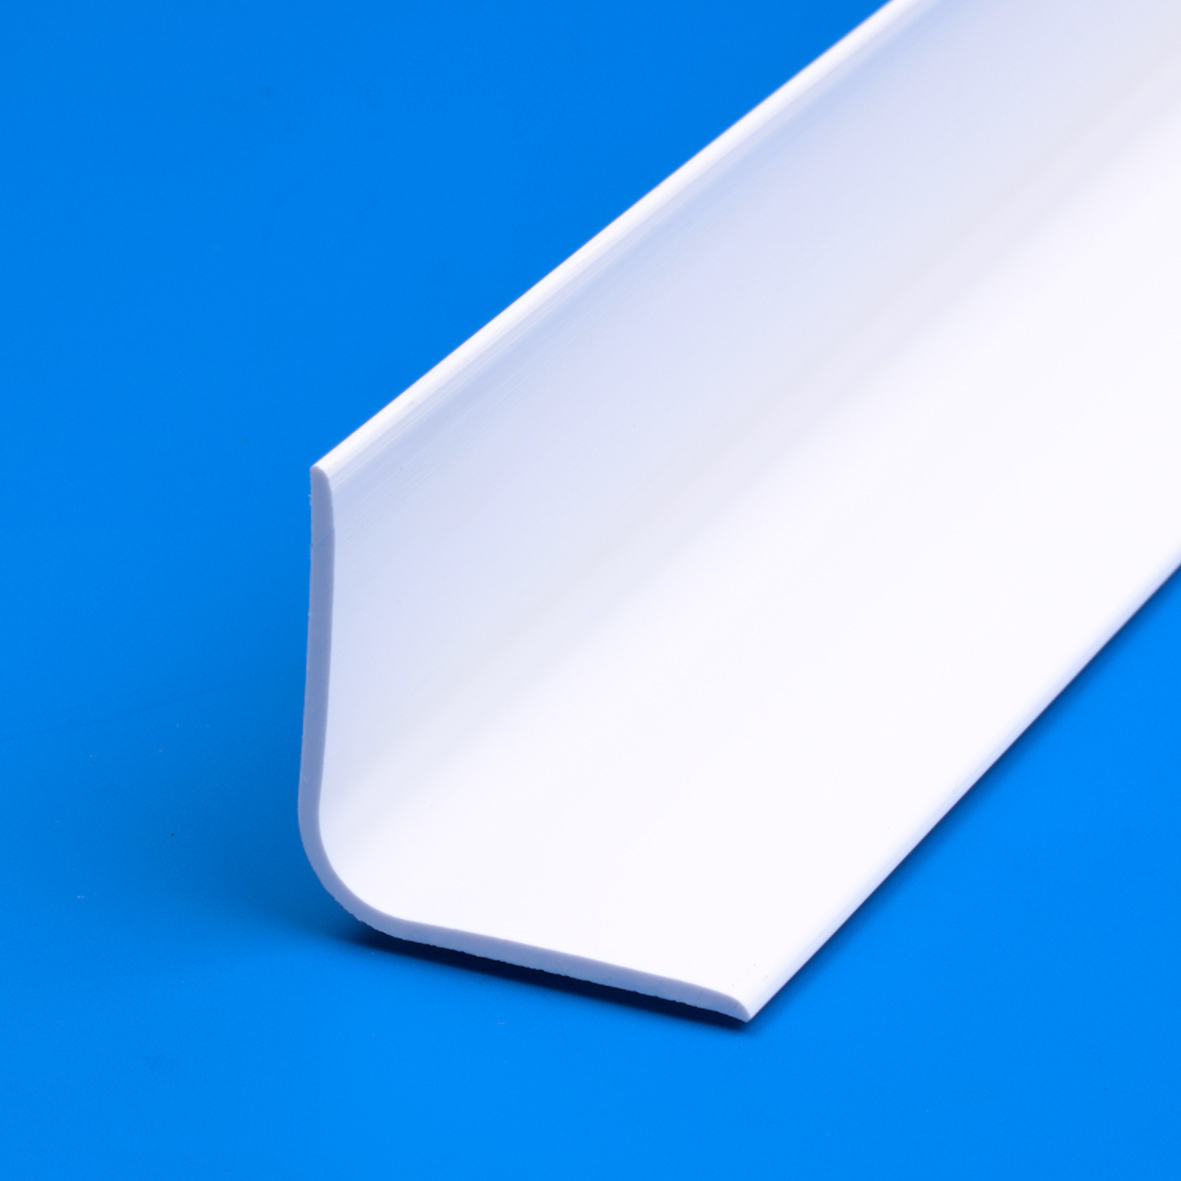 Kiowa Ltd 8ft Pvc Internal Angle Cladding Profile 38mm